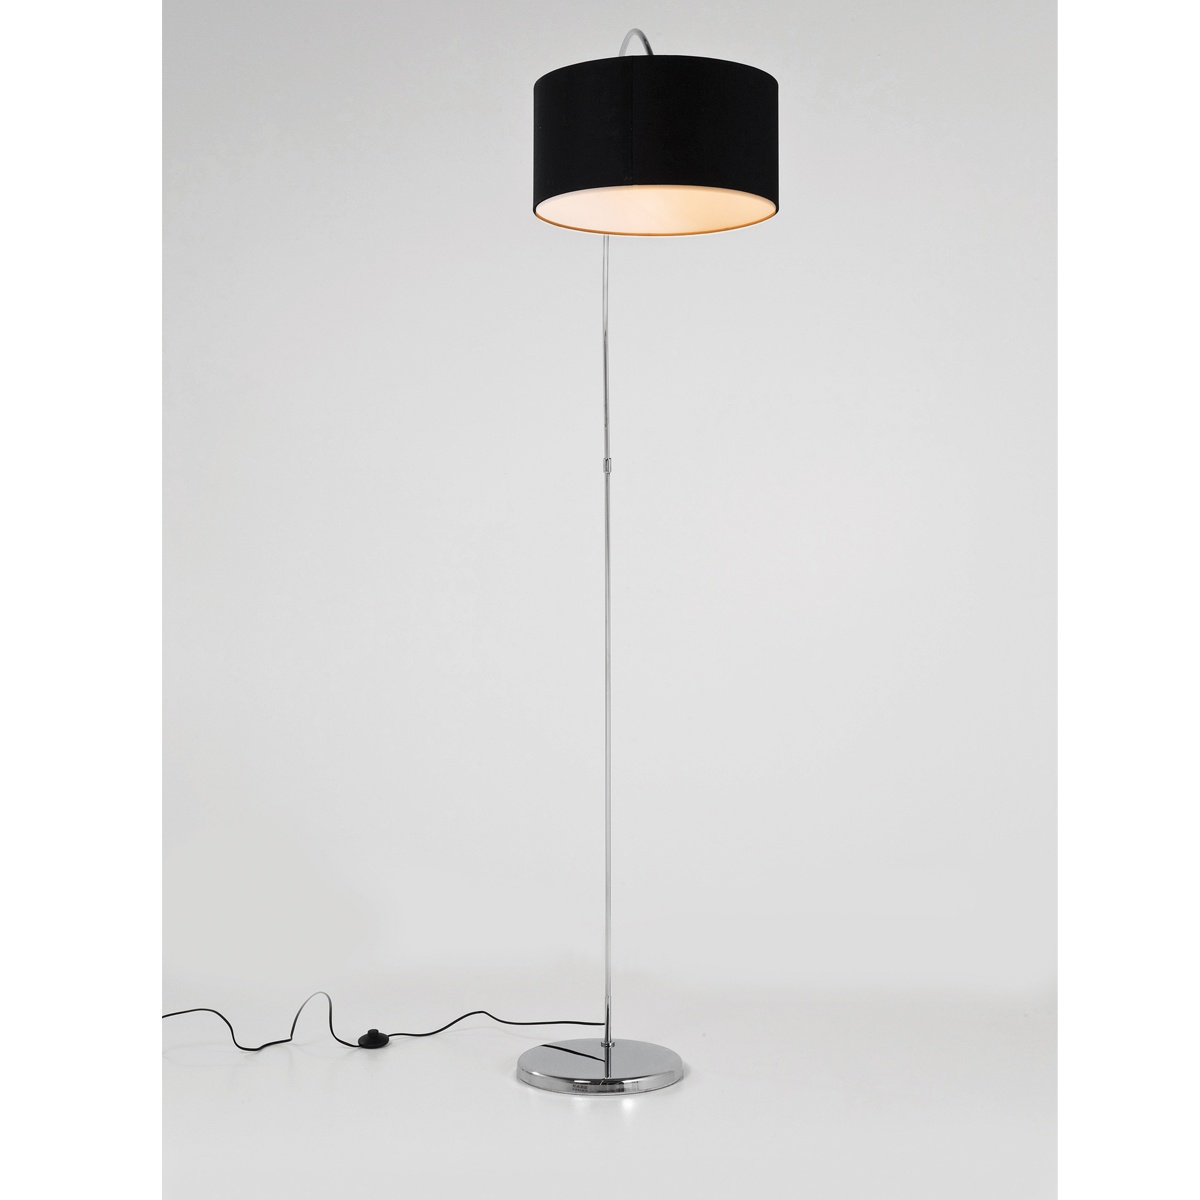 Belleville Retro Arch Black Floor Lamp, French Bedroom Company